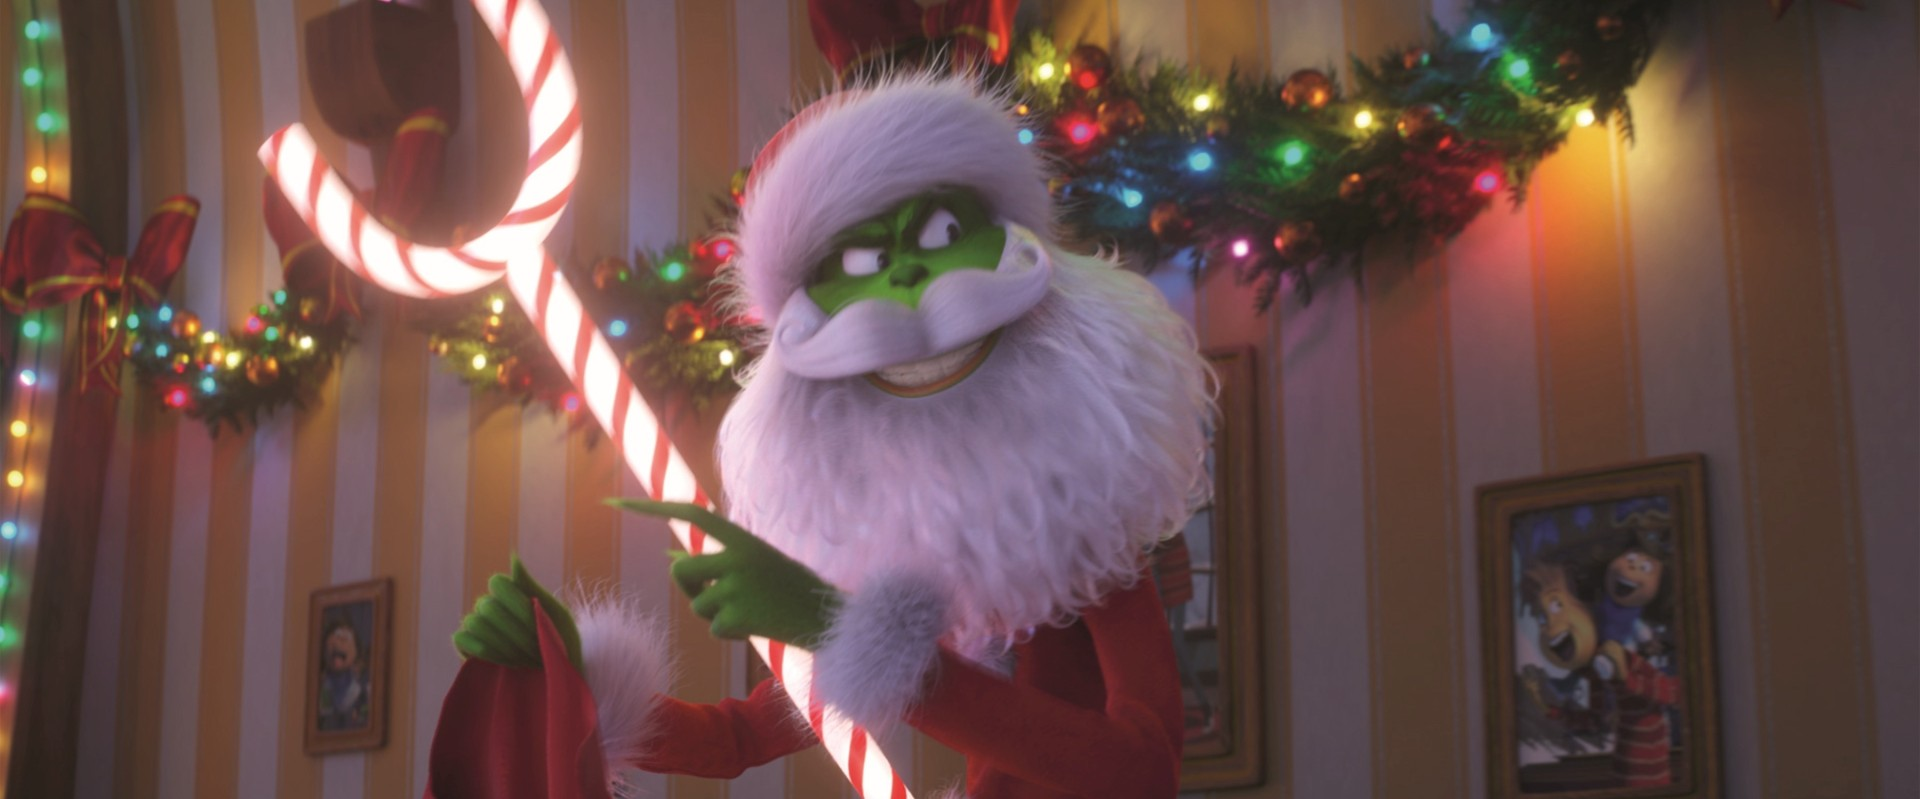 The Grinch Film Review Benedict Cumberbatch Voices Dr